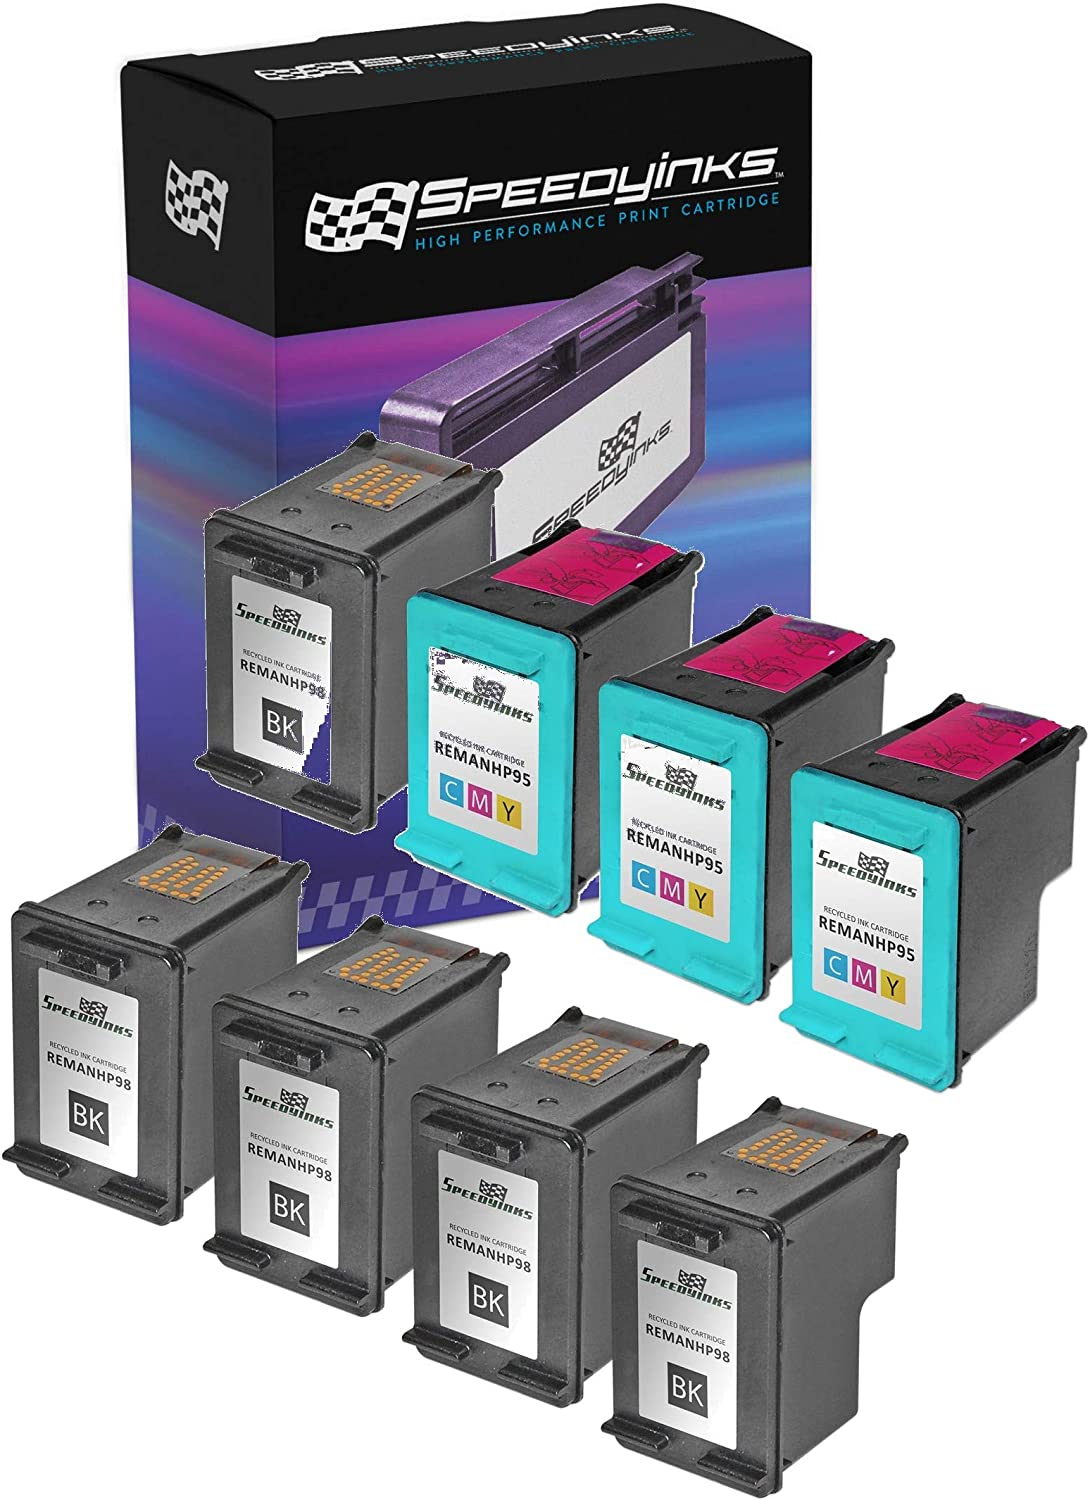 Speedy Inks Remanufactured Ink Cartridge Replacement for HP 98 and HP 95 (5 Black, 3 Color, 8-Pack)